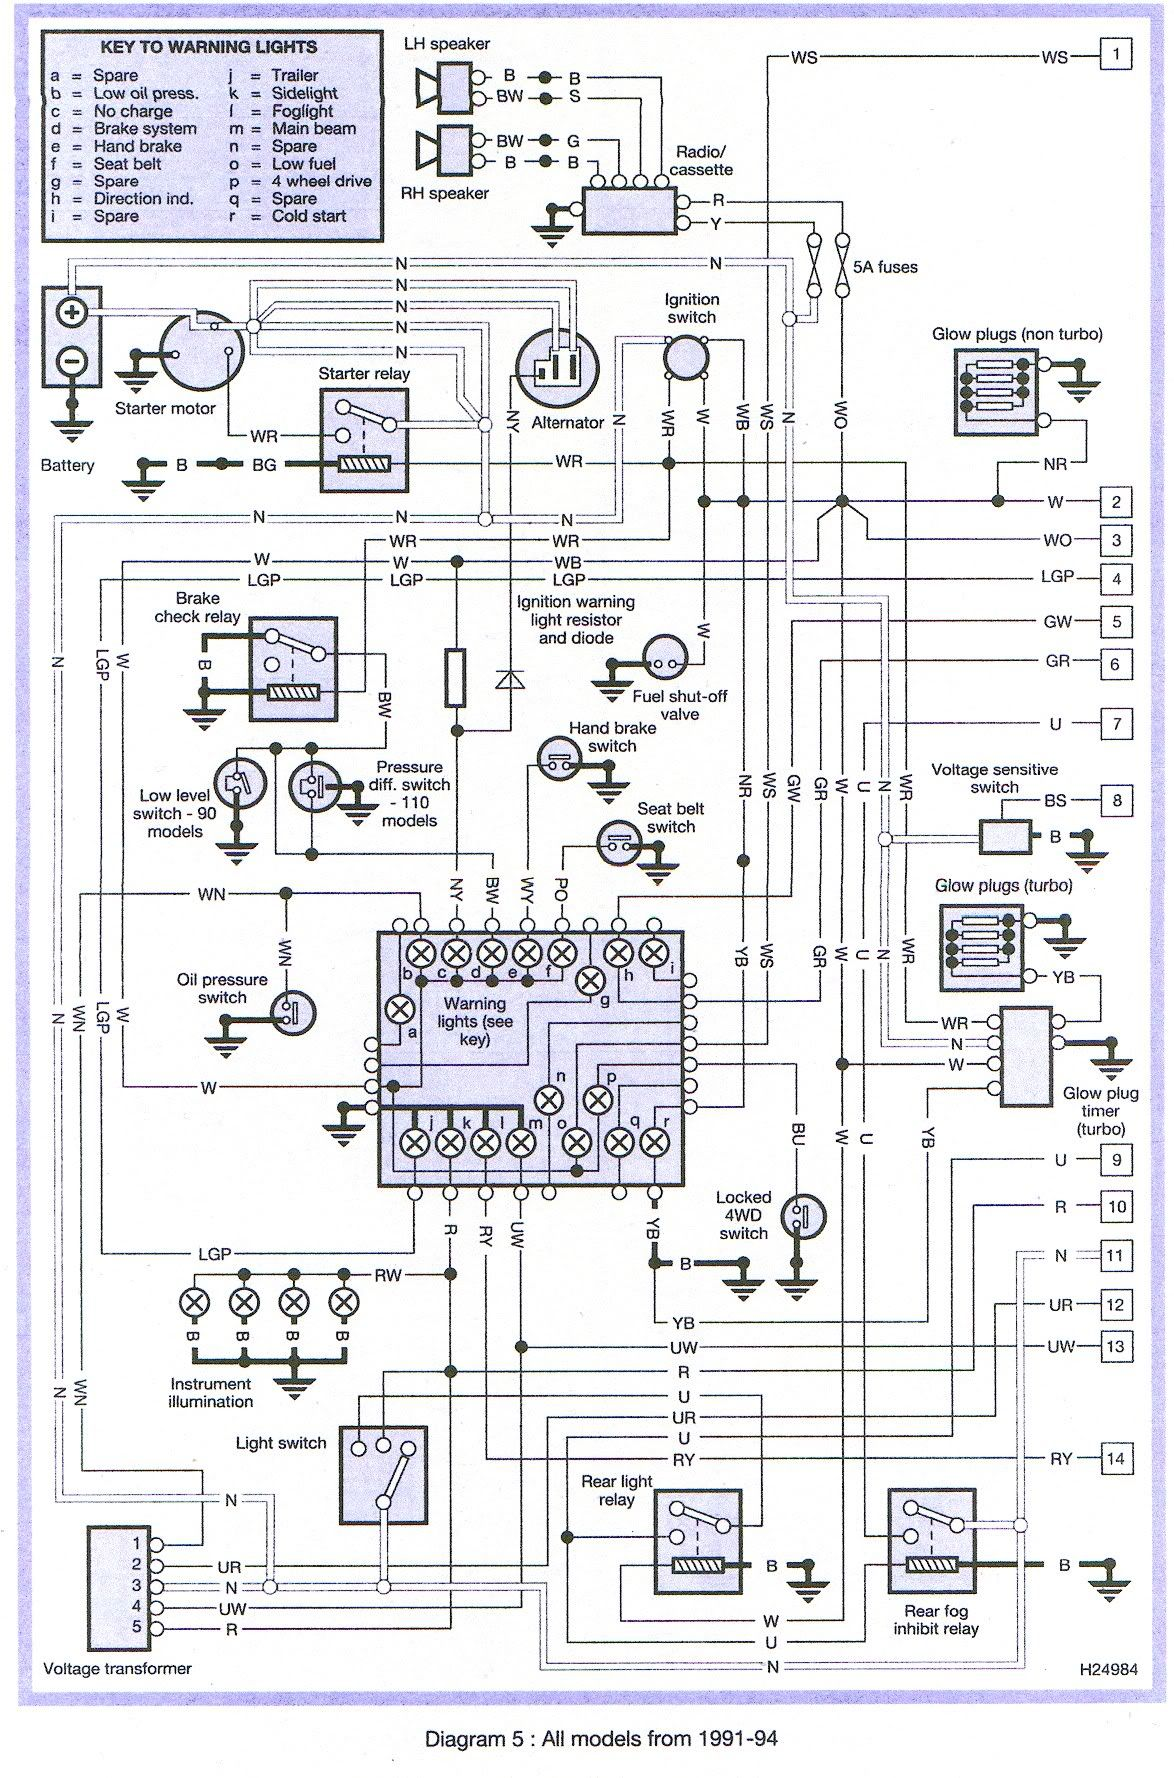 hight resolution of land rover discovery wiring diagram manual repair with engine land rover discovery wiring diagram manual repair